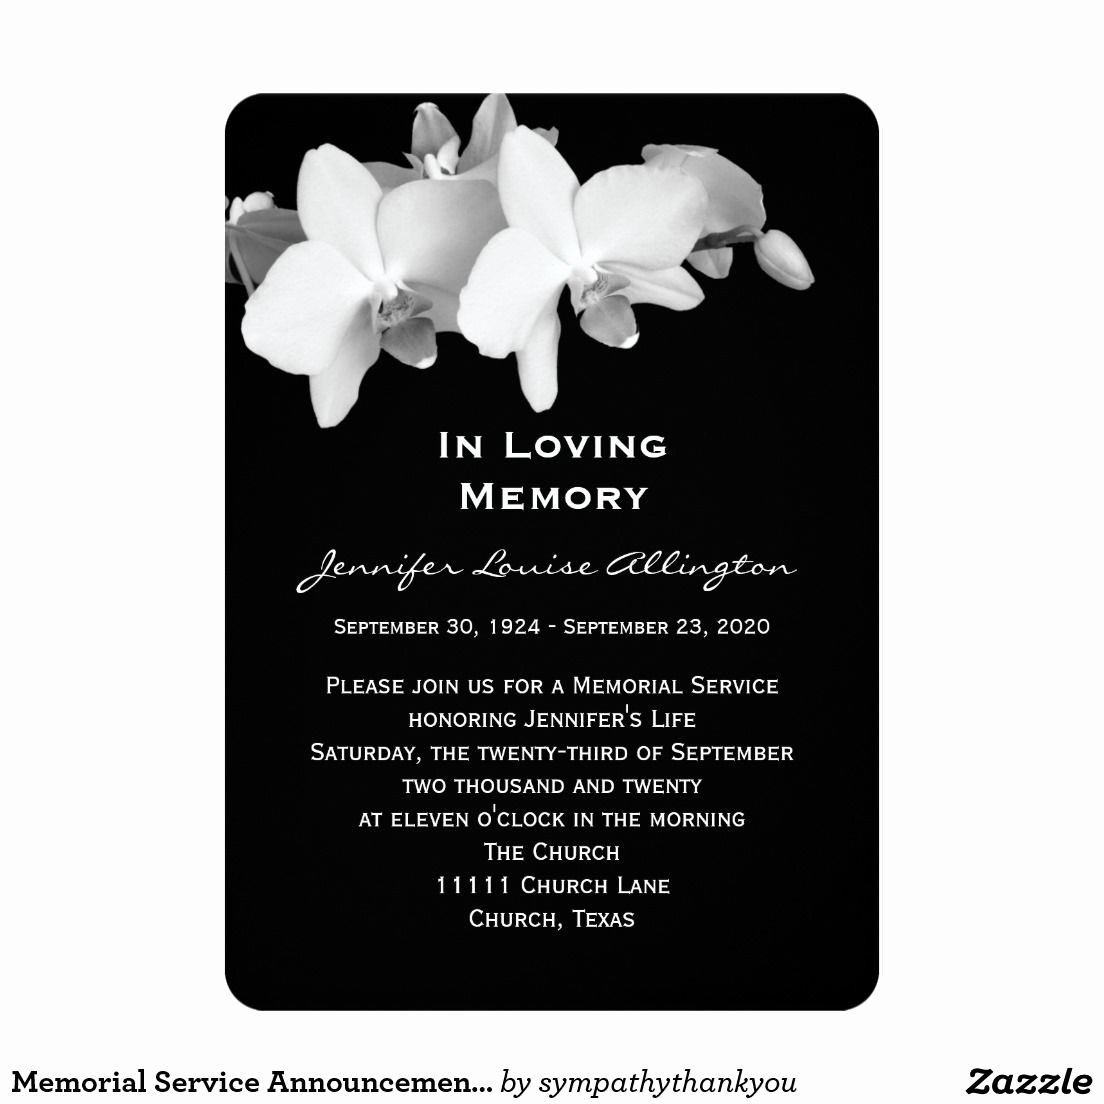 Memorial Service Announcement Template Free New Memorial Service Announcement orchids